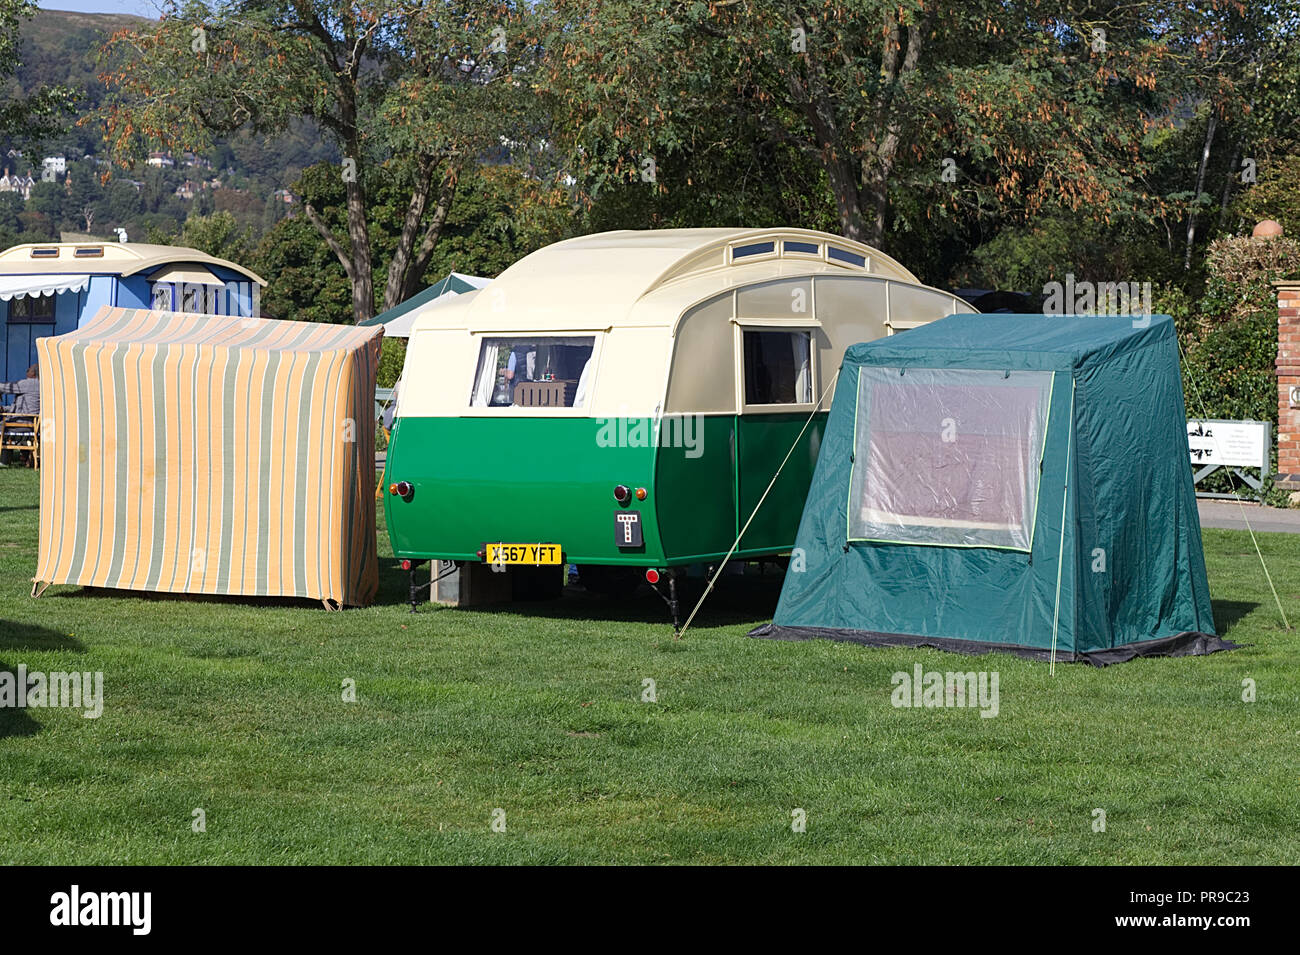 Vintage Caravan And Awning On A Campsite Stock Photo 220868539 Alamy